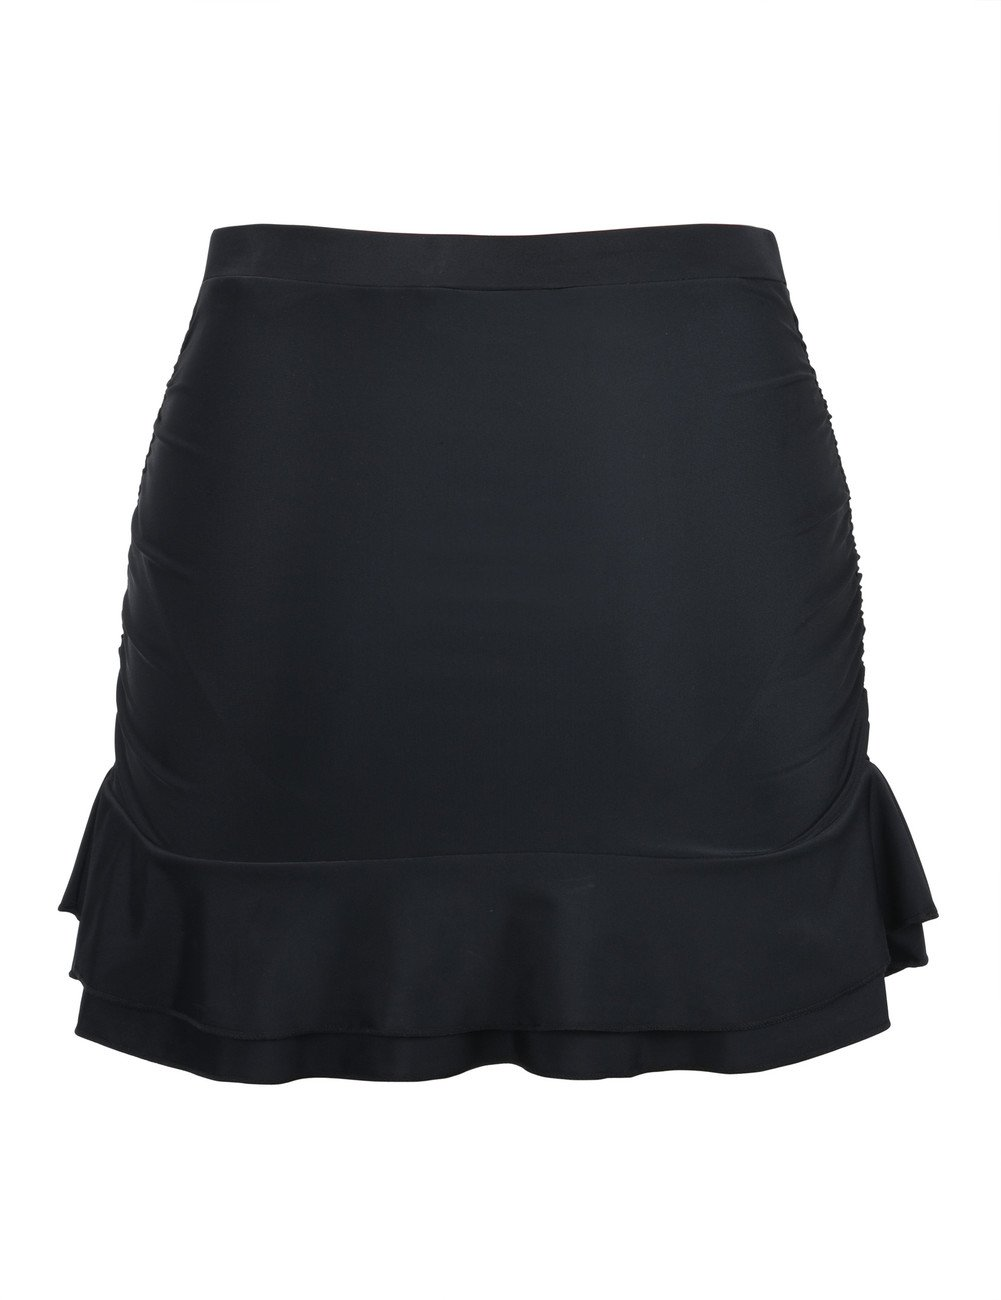 Hilor Women's Skirted Bikini Bottom High Waisted Shirred Swim Bottom Ruffle Swim Skirt Black 10(fits 6) by Hilor (Image #3)